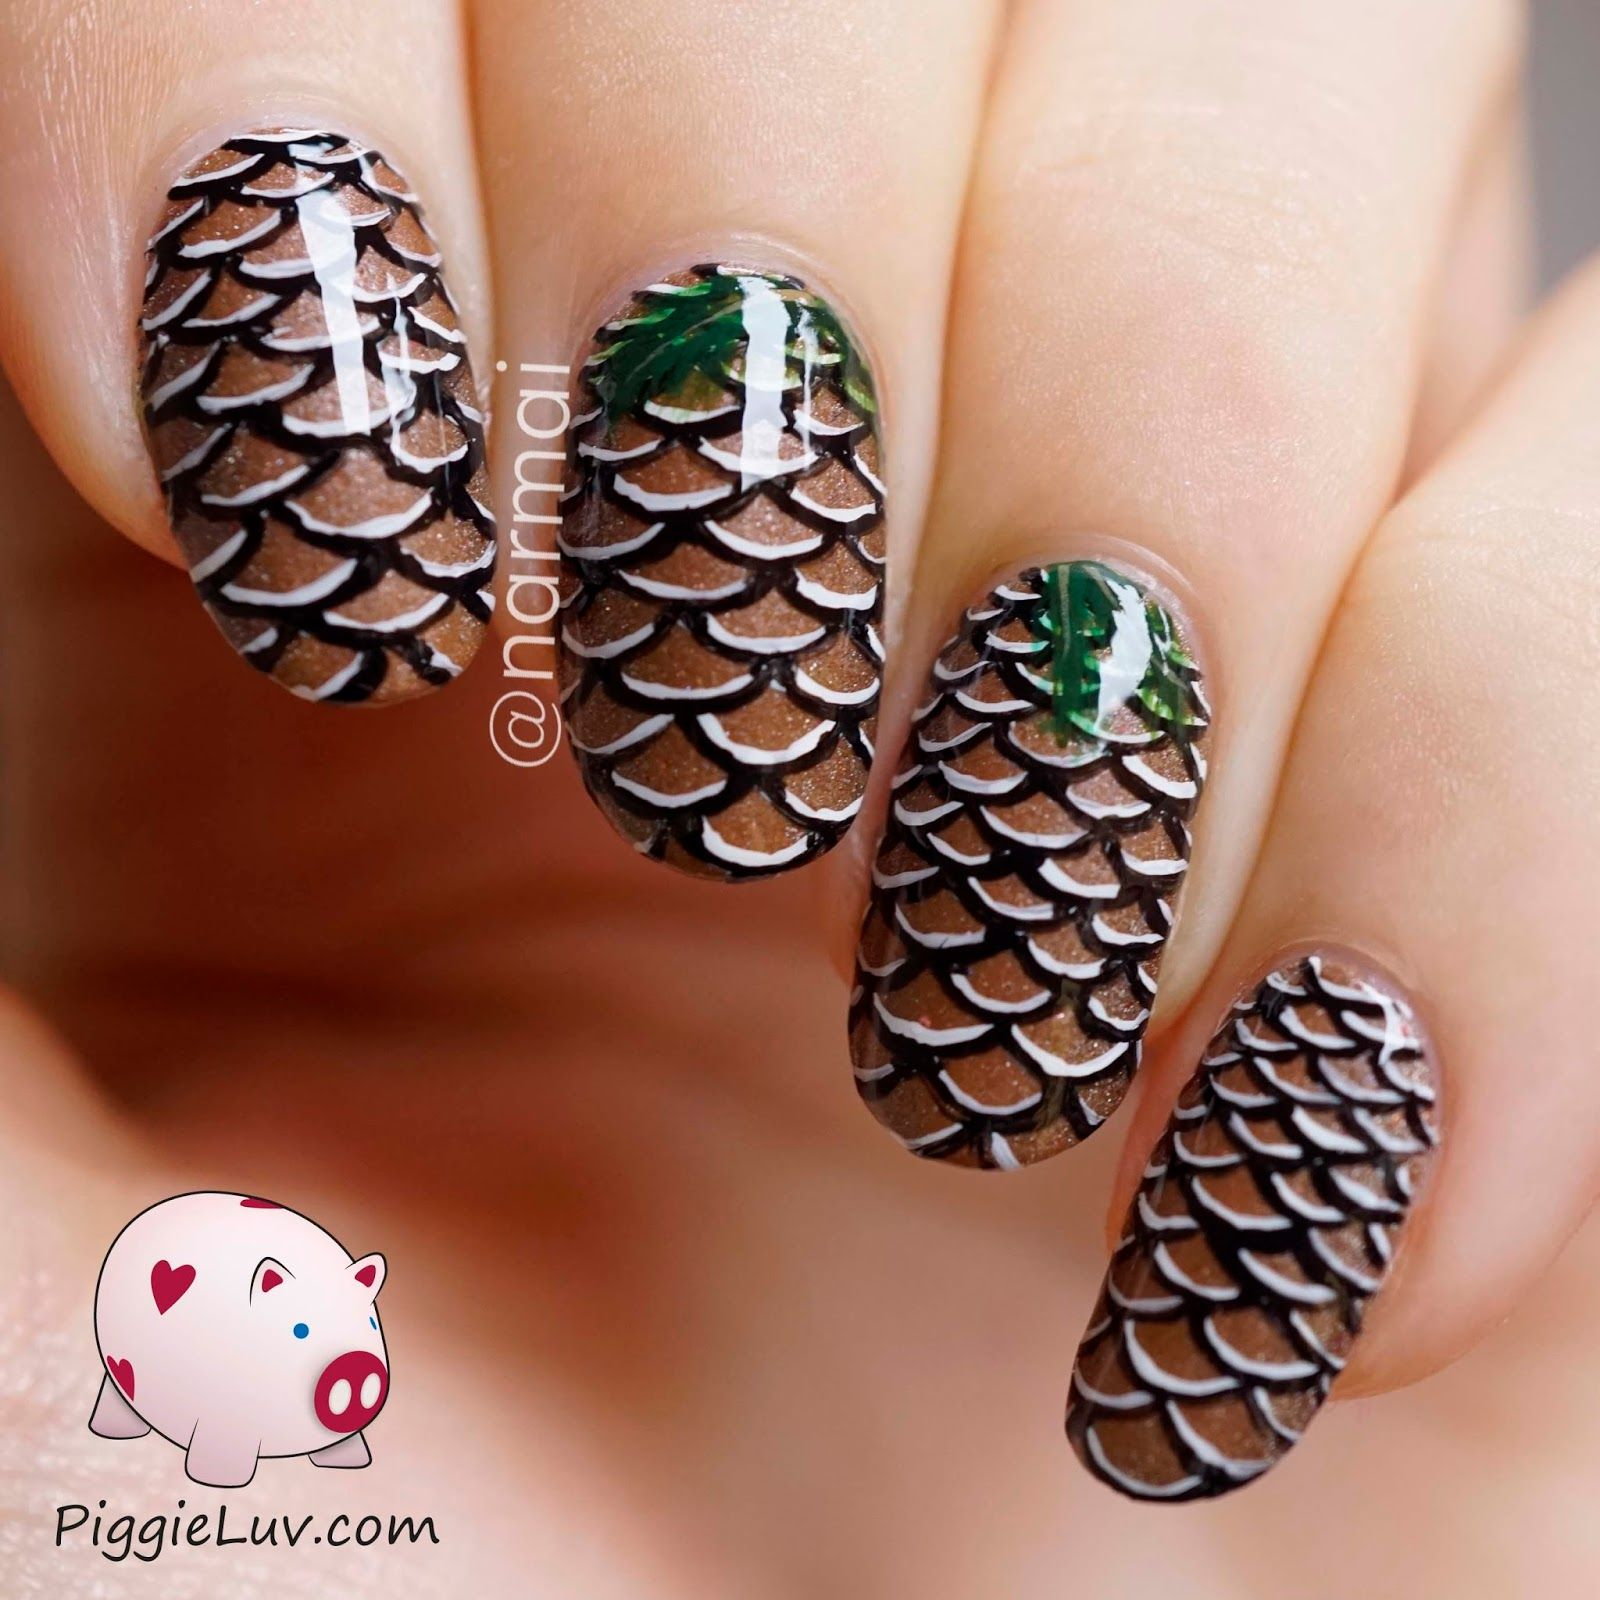 Pine cone nail art video tutorial pine cone pine and tutorials nail art videos prinsesfo Images